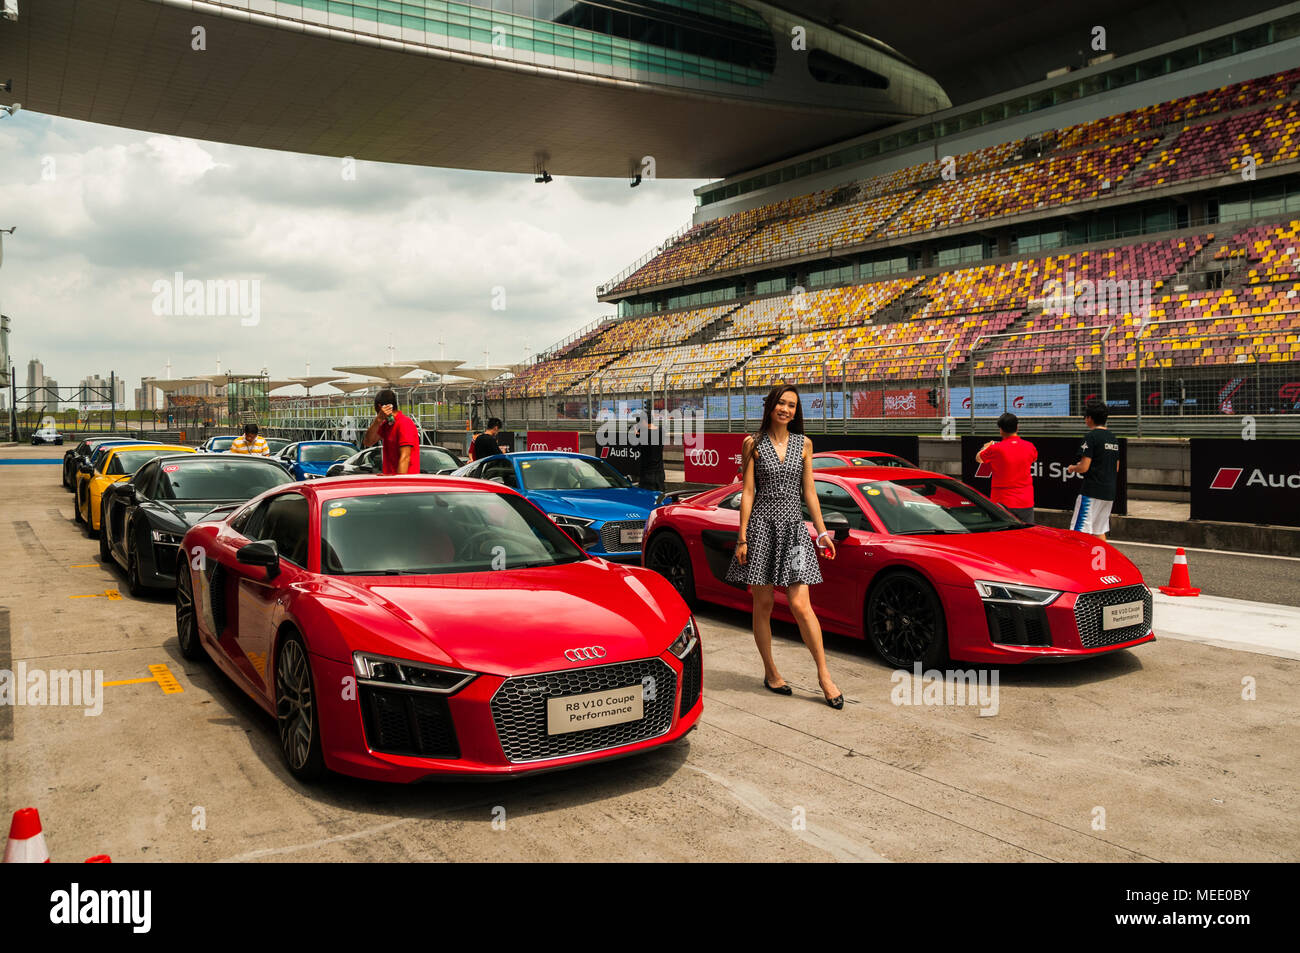 Line Up Of Audi R V Coupe Performance Cars On The Starting Grid - Audi performance cars